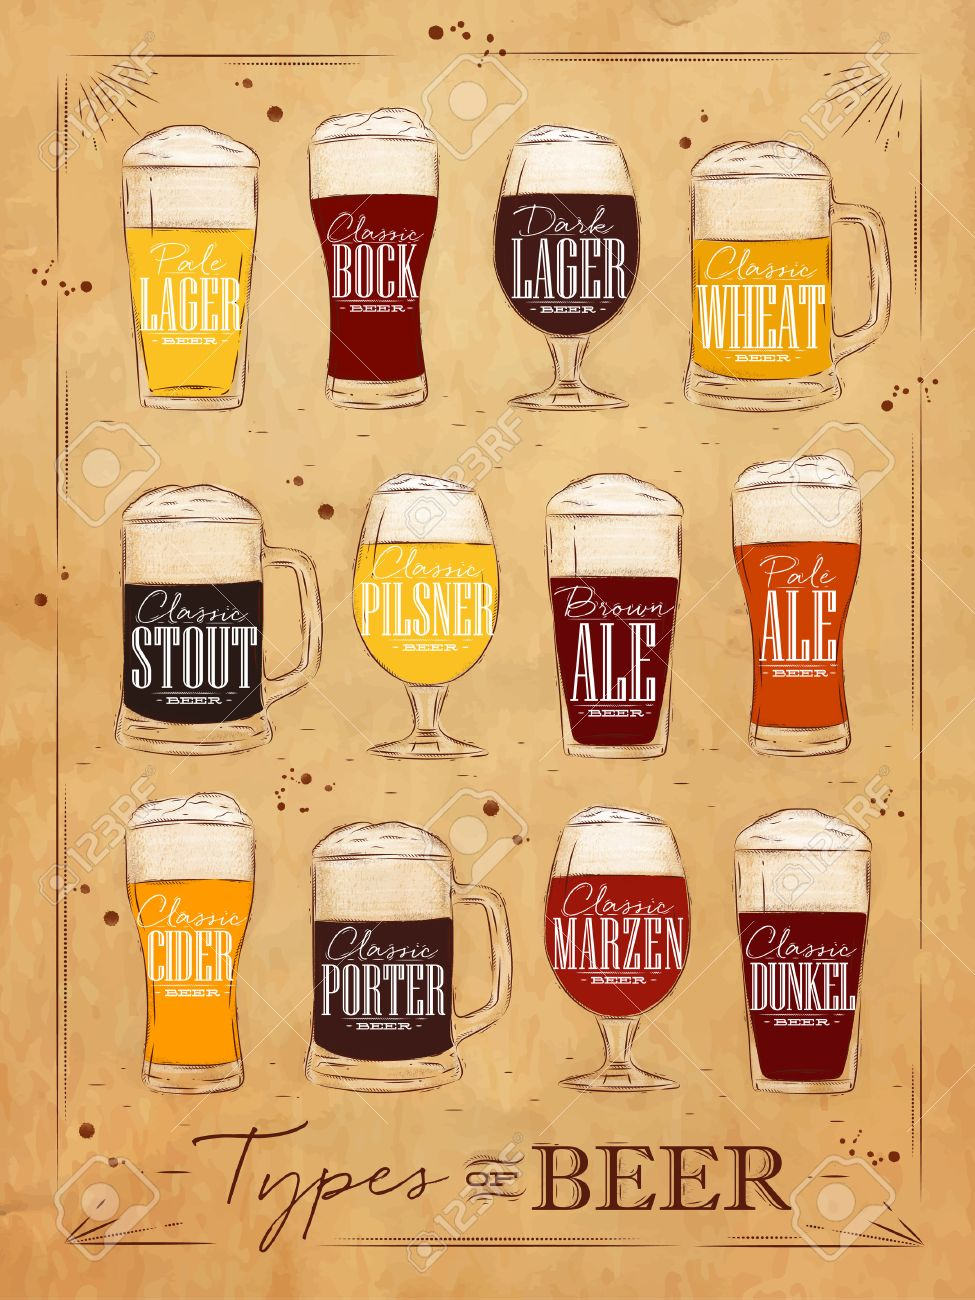 Poster beer types with main types of beer pale lager, bock, dark lager, wheat, brown ale, pale ale, cider, porter, marzen, dunkel drawing in vintage style on background - 52579483